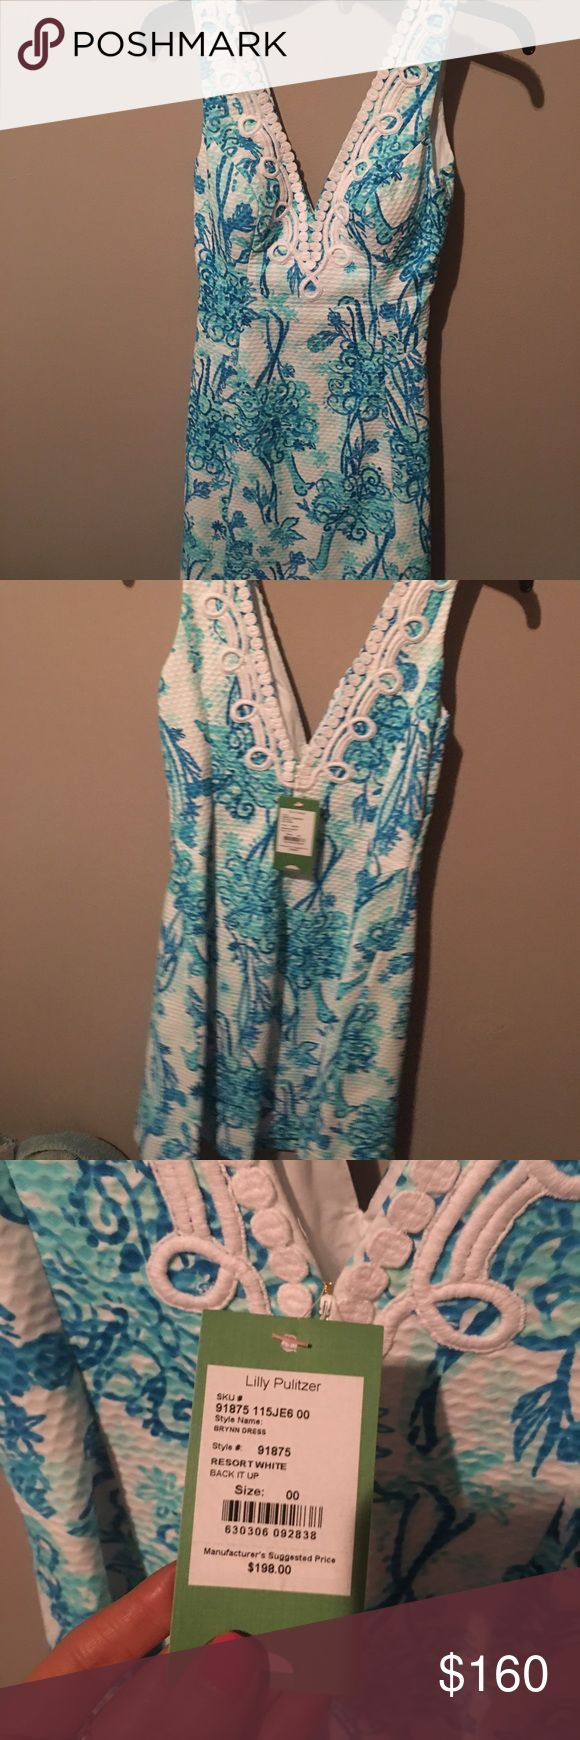 """Lilly Pulitzer """"Back It Up"""" Dress **SALE** New with tags Brynn Dress. So gorgeous and perfect for weddings. 💙 Very flattering as well. I love it, just don't really ever reach for it. SOLD! Lilly Pulitzer Dresses Mini"""